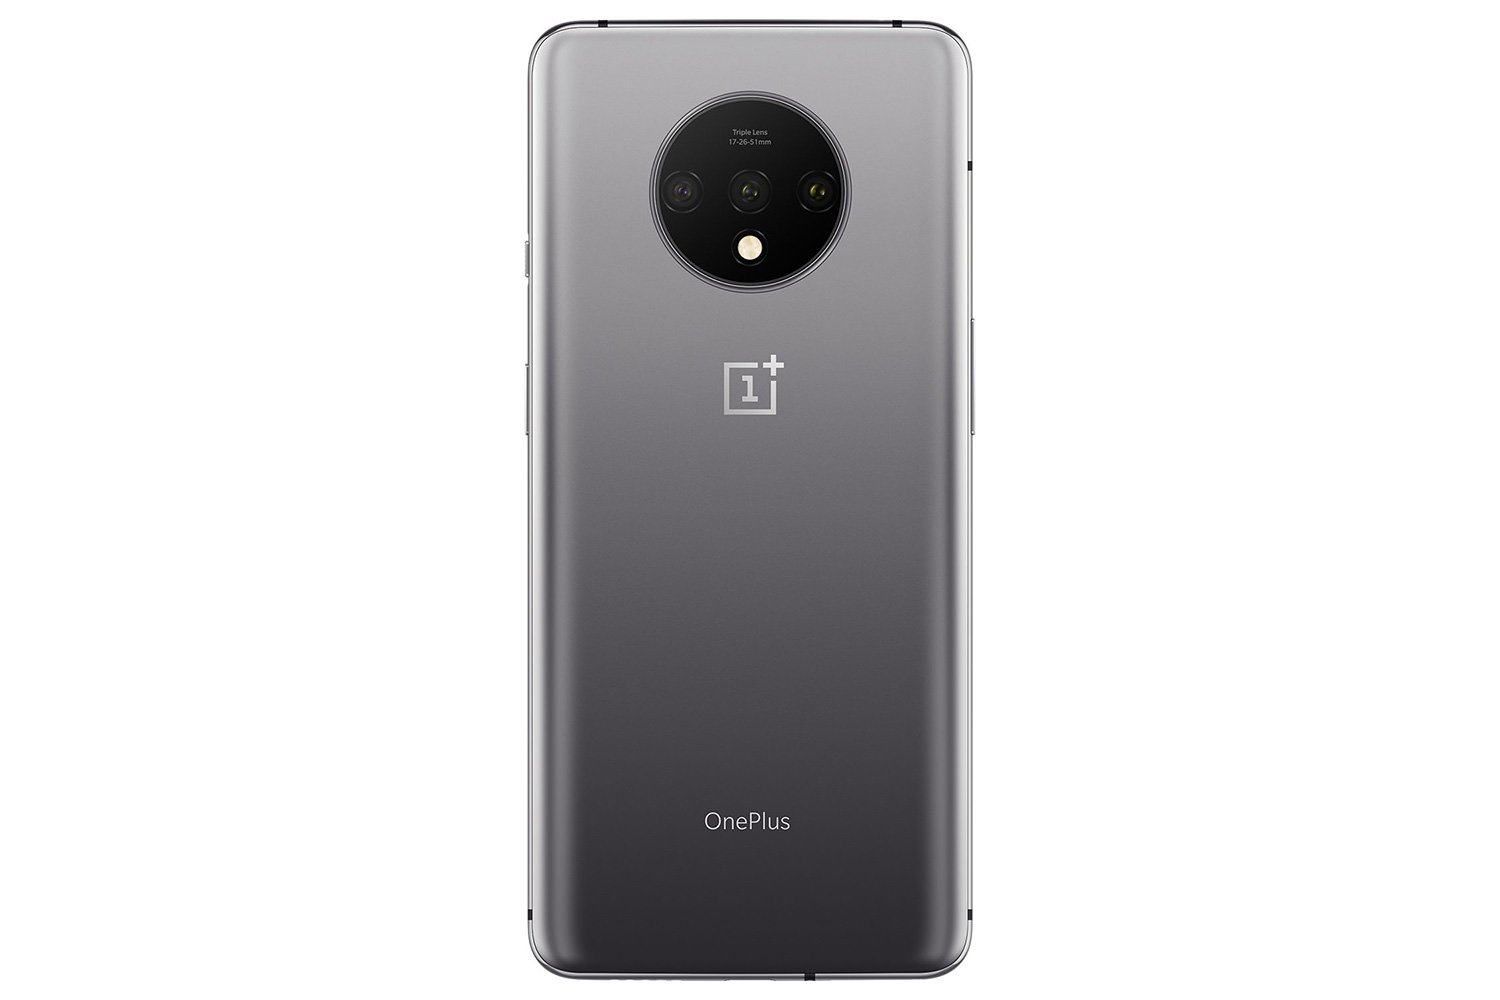 oneplus 7t / <a class='tagColor' href='/Tags/Archive/وان پلاس'>وان پلاس</a> ۷ تی